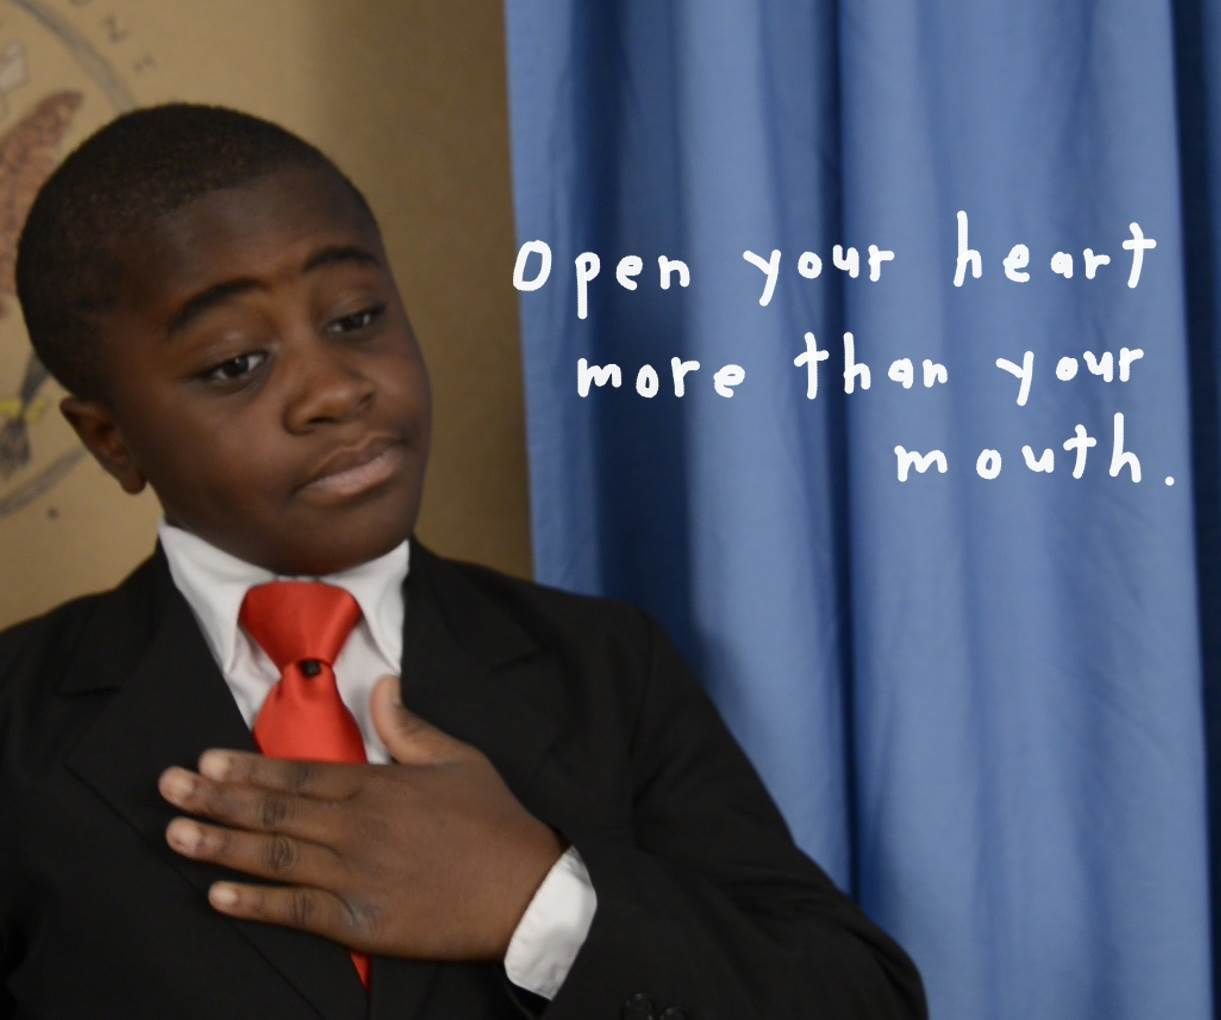 Presidents Quotes 20 Kid President Quotes To Live You Ve People And Kid President